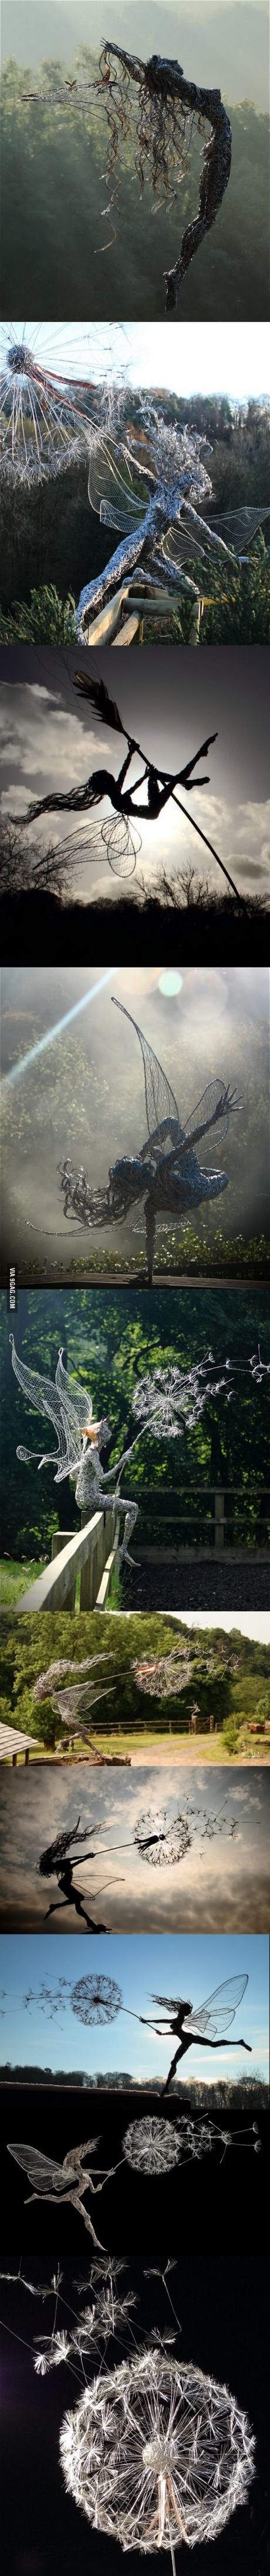 Ethereal fairy wire sculptures by Robin Wight.